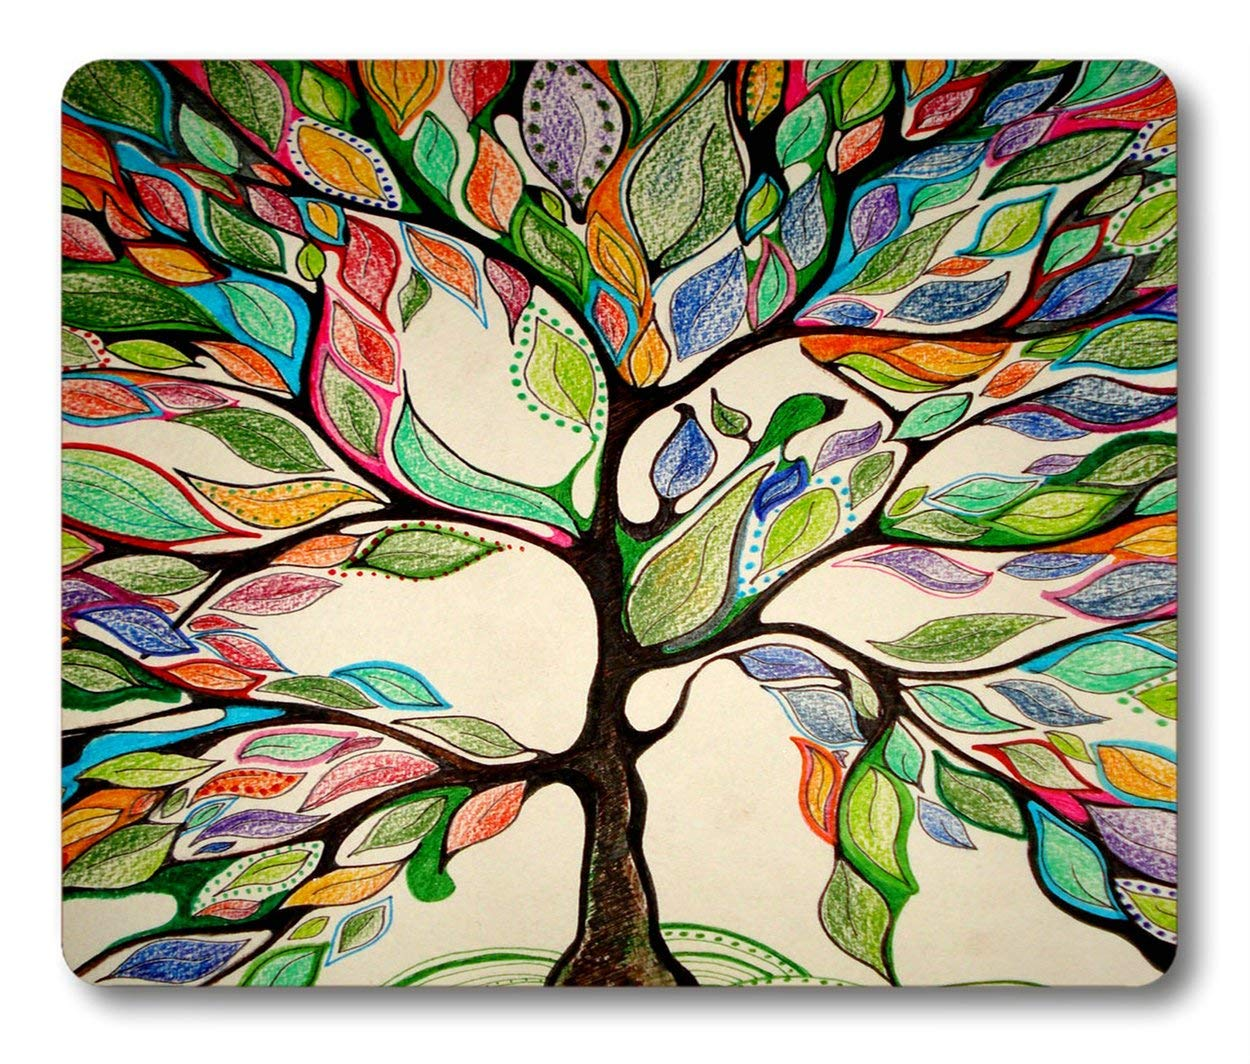 Smooffly Tree Gaming Mouse Pad,Tree Of Life Non-Slip Rubber Mouse pad Gaming Mouse Pad